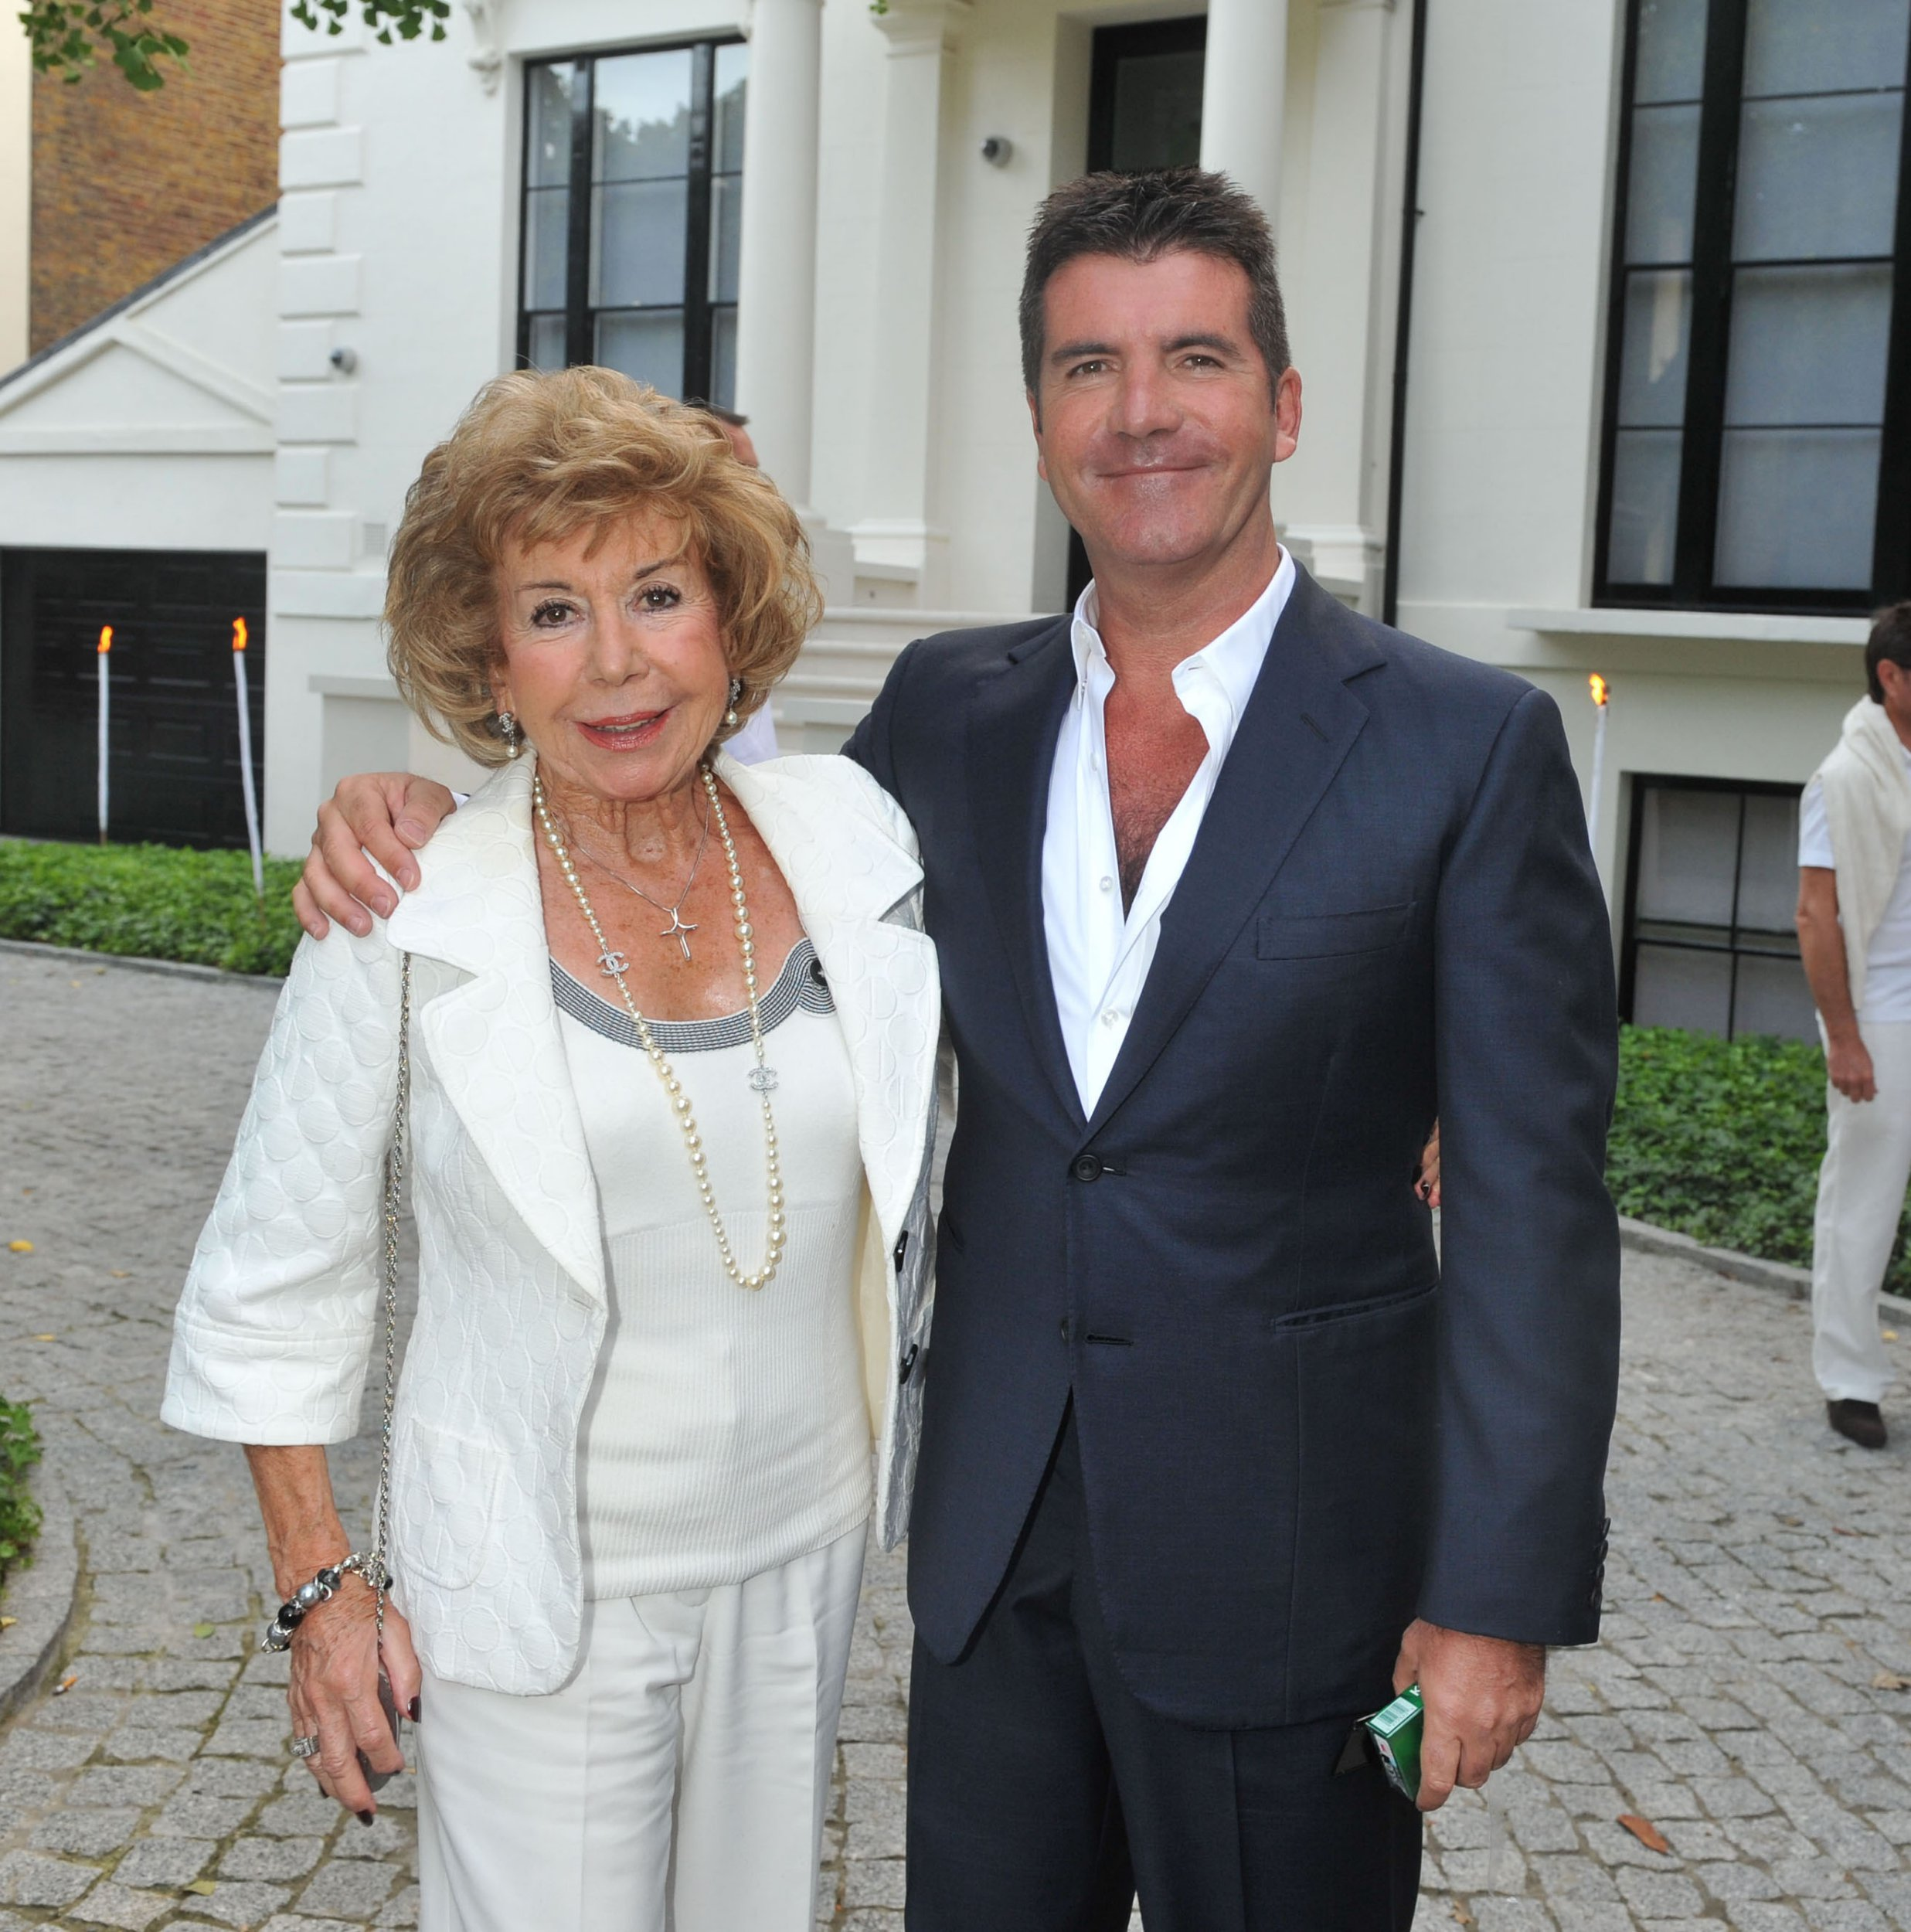 Mandatory Credit: Photo by Alan Davidson/REX/Shutterstock (7547762bk) Jackie St Clair and Simon Cowell Joint 50th Birthday Party at Her Home in Holland Park London Simon Cowell with His Mother Julie Brett Jiont 50th Birthday Party - 25 Jul 2009